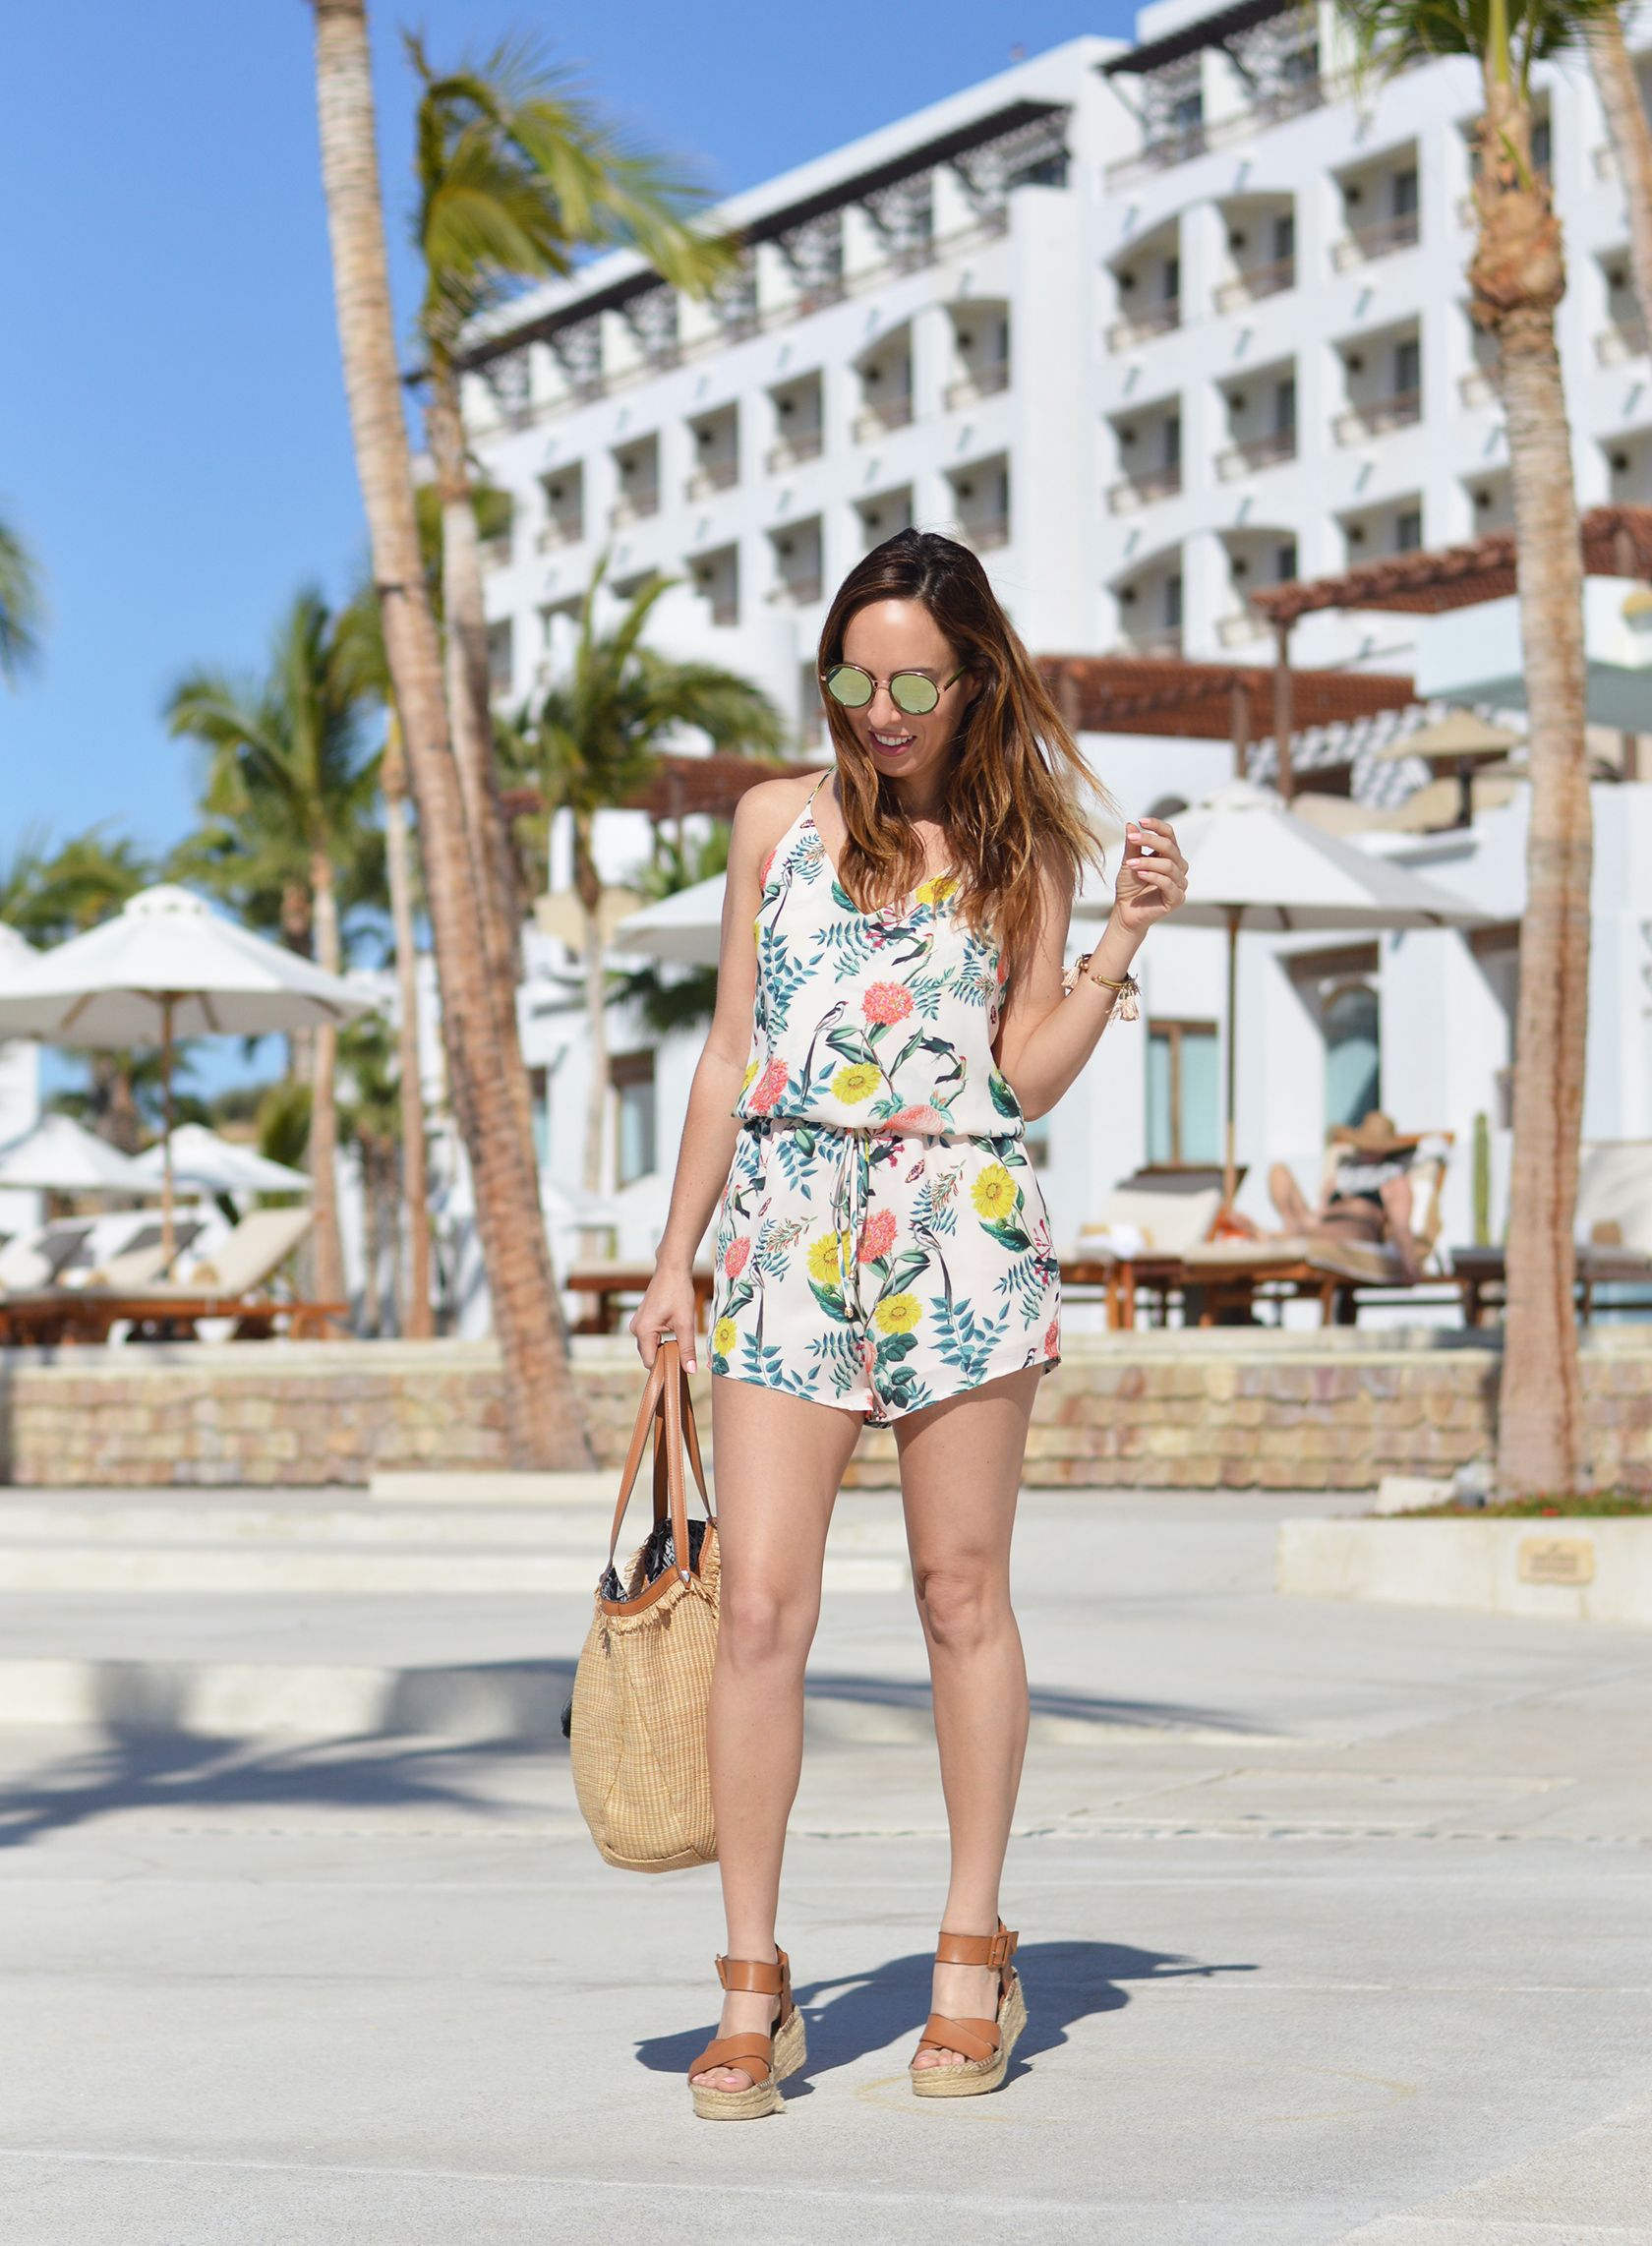 205e3326cd98 Sydne Style shows outfit ideas for a beach resort vacation in floral romper